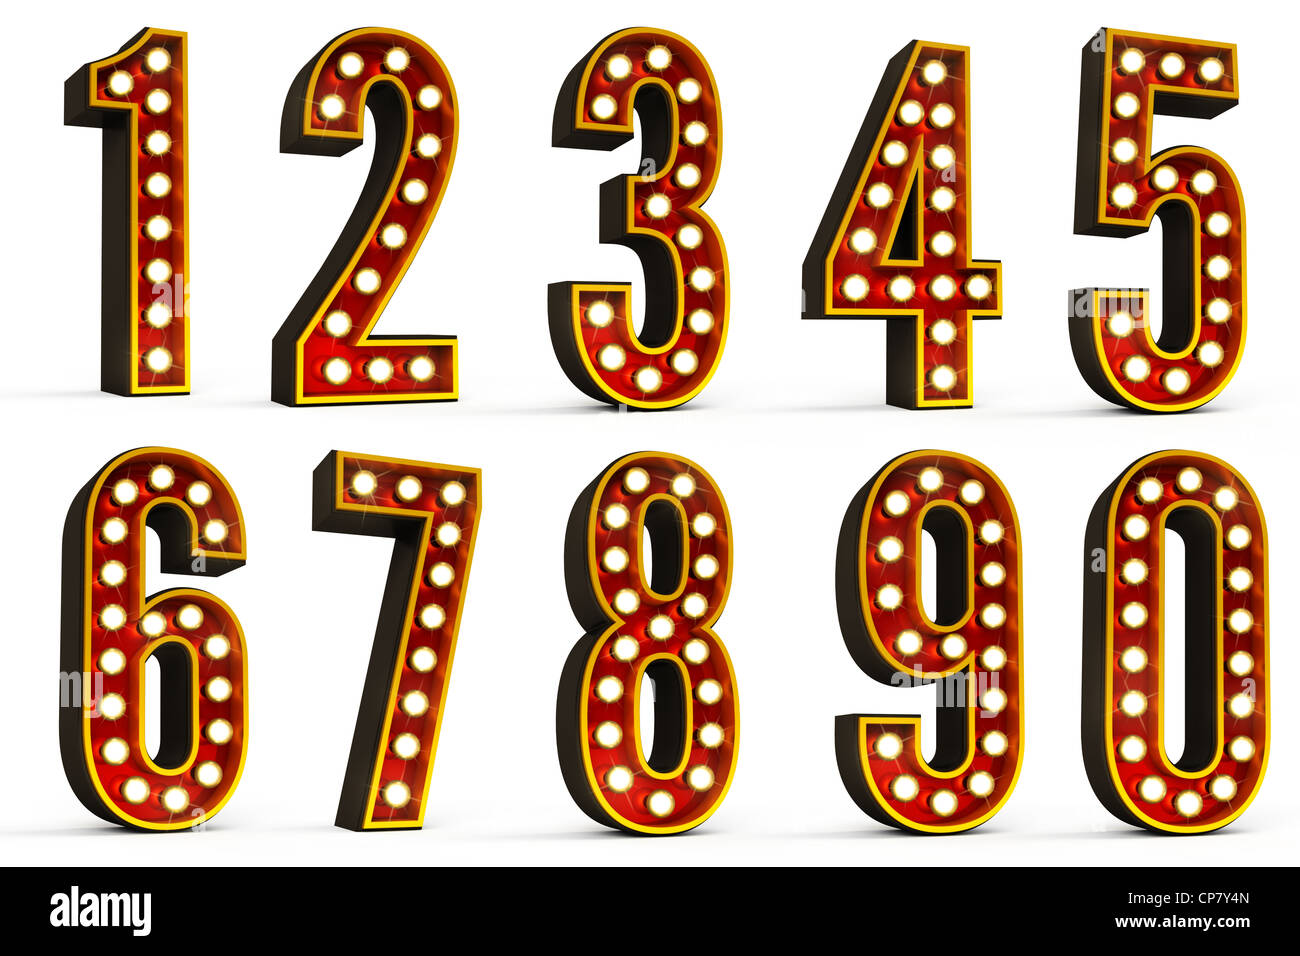 Set of all ten numbers - Stock Image